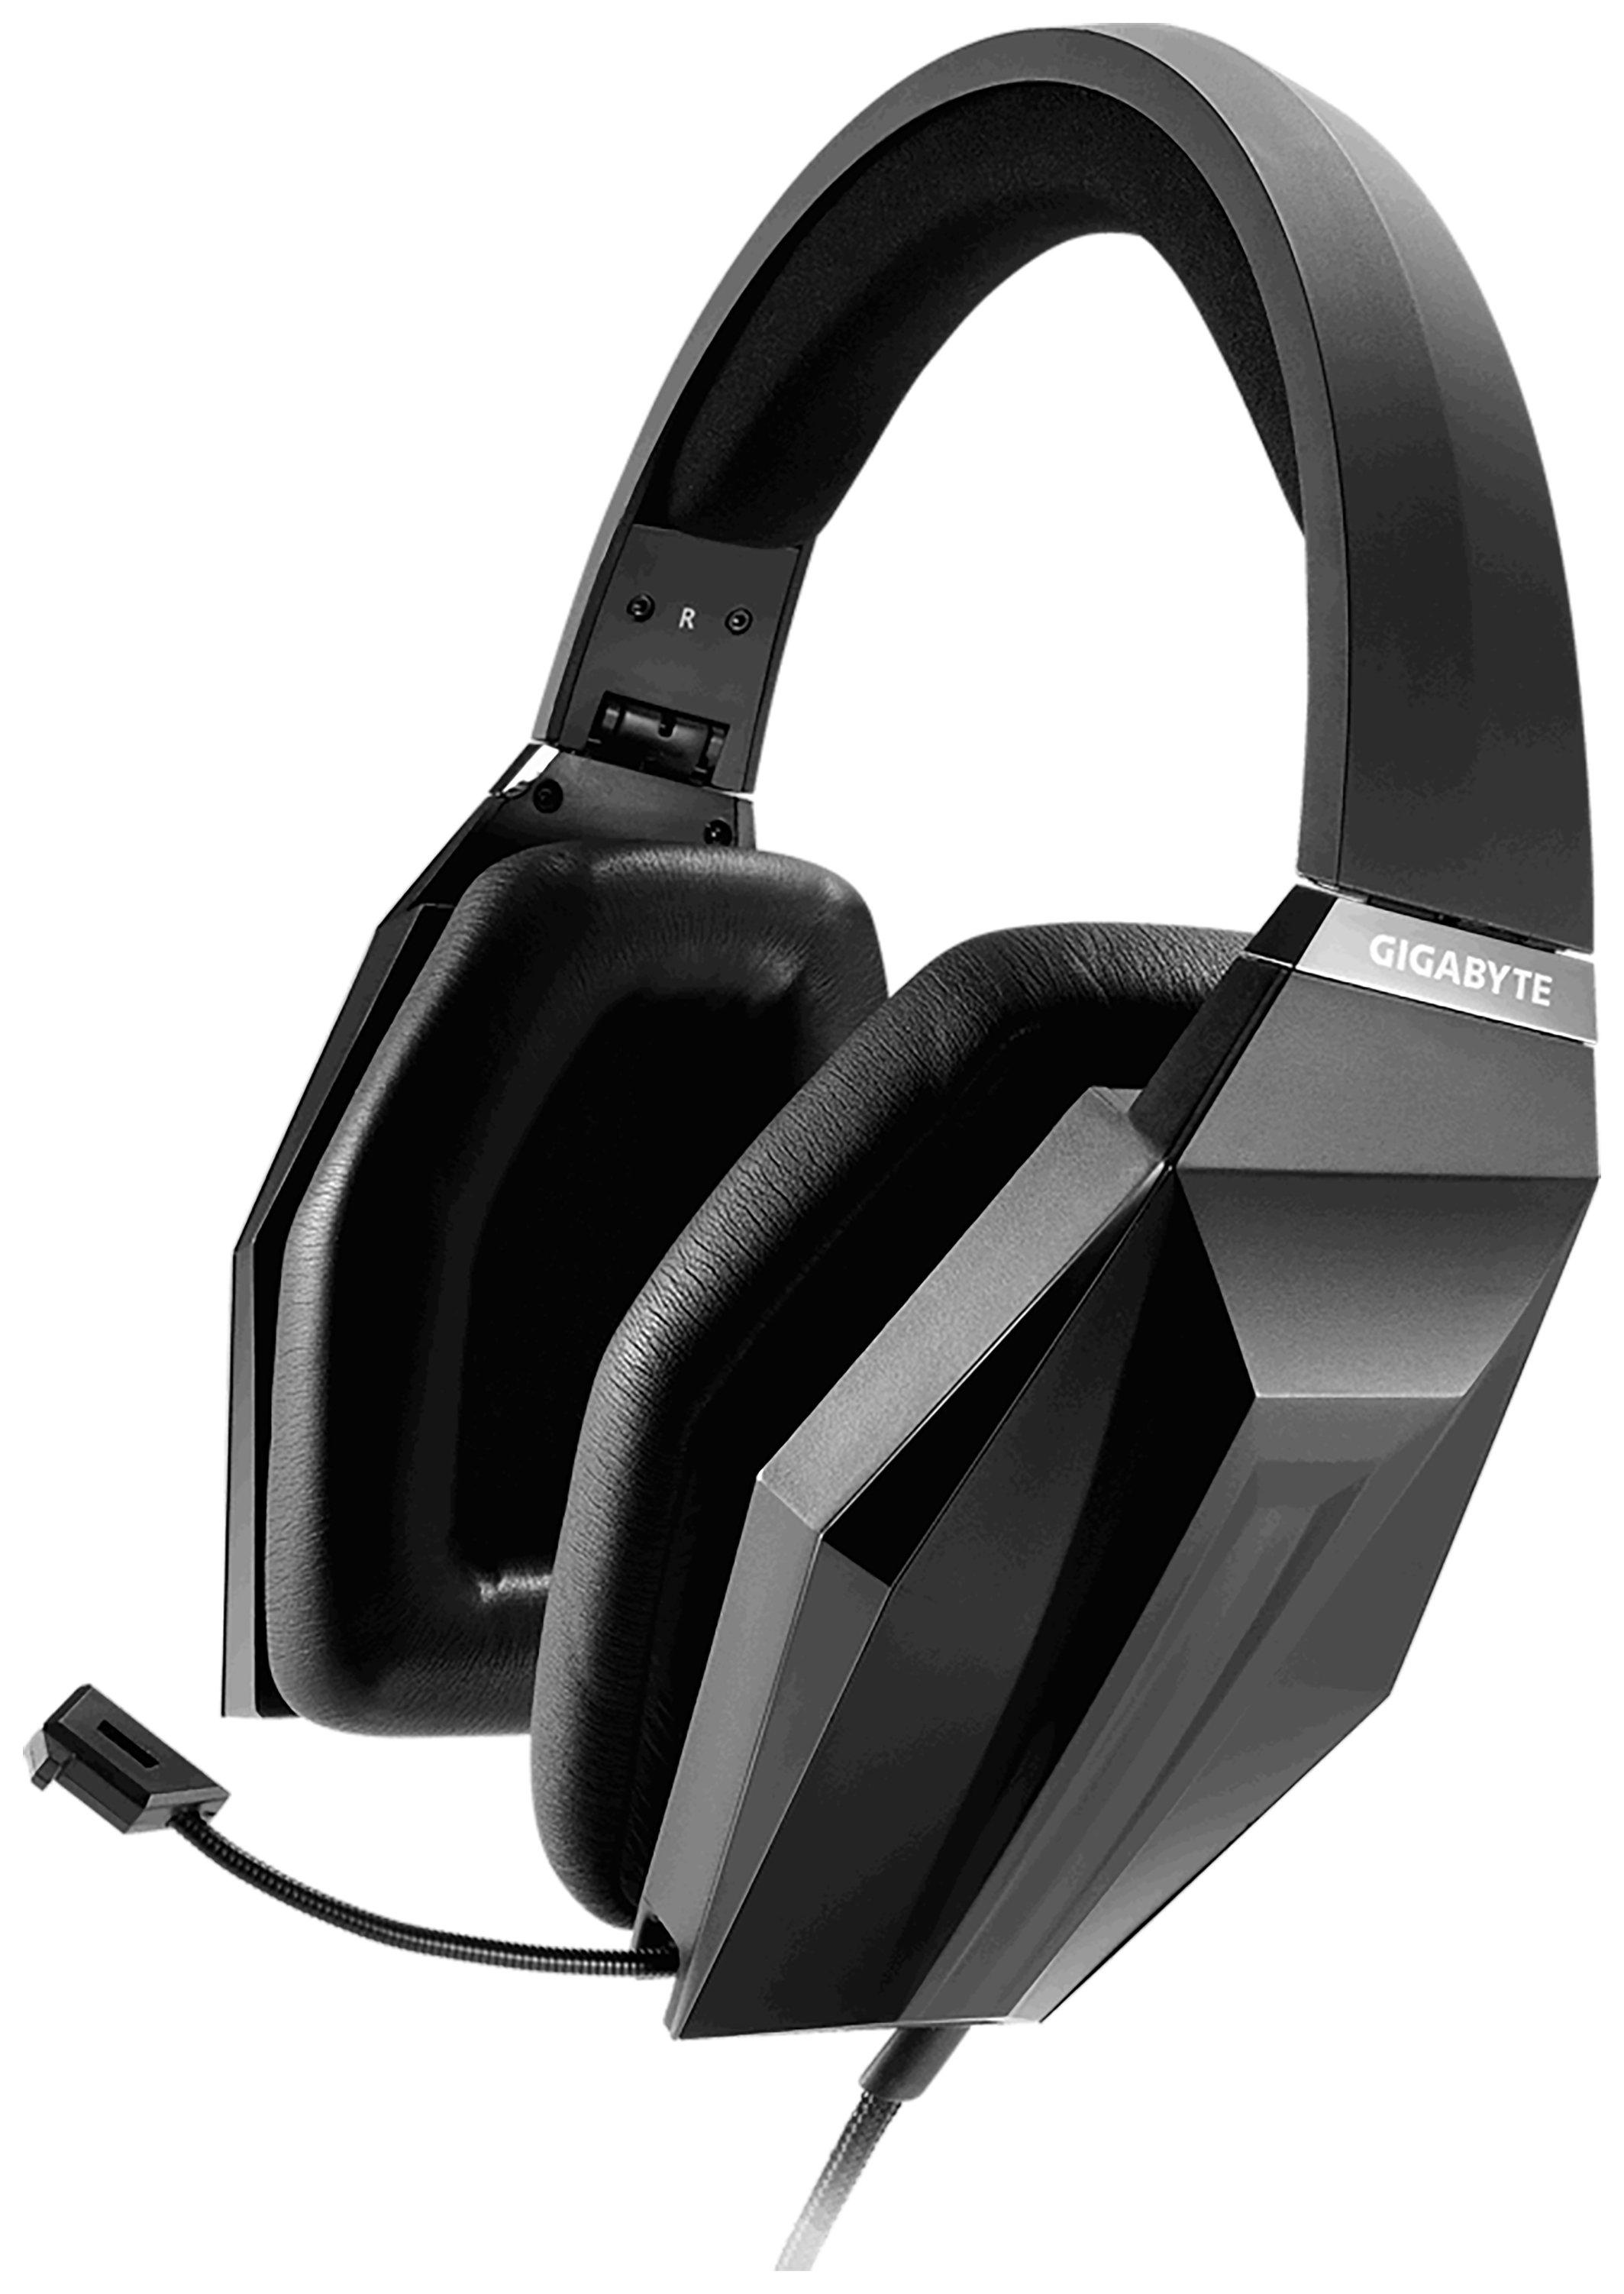 Image of Gigabyte Force H7 Black Wired Gaming Headset for PC